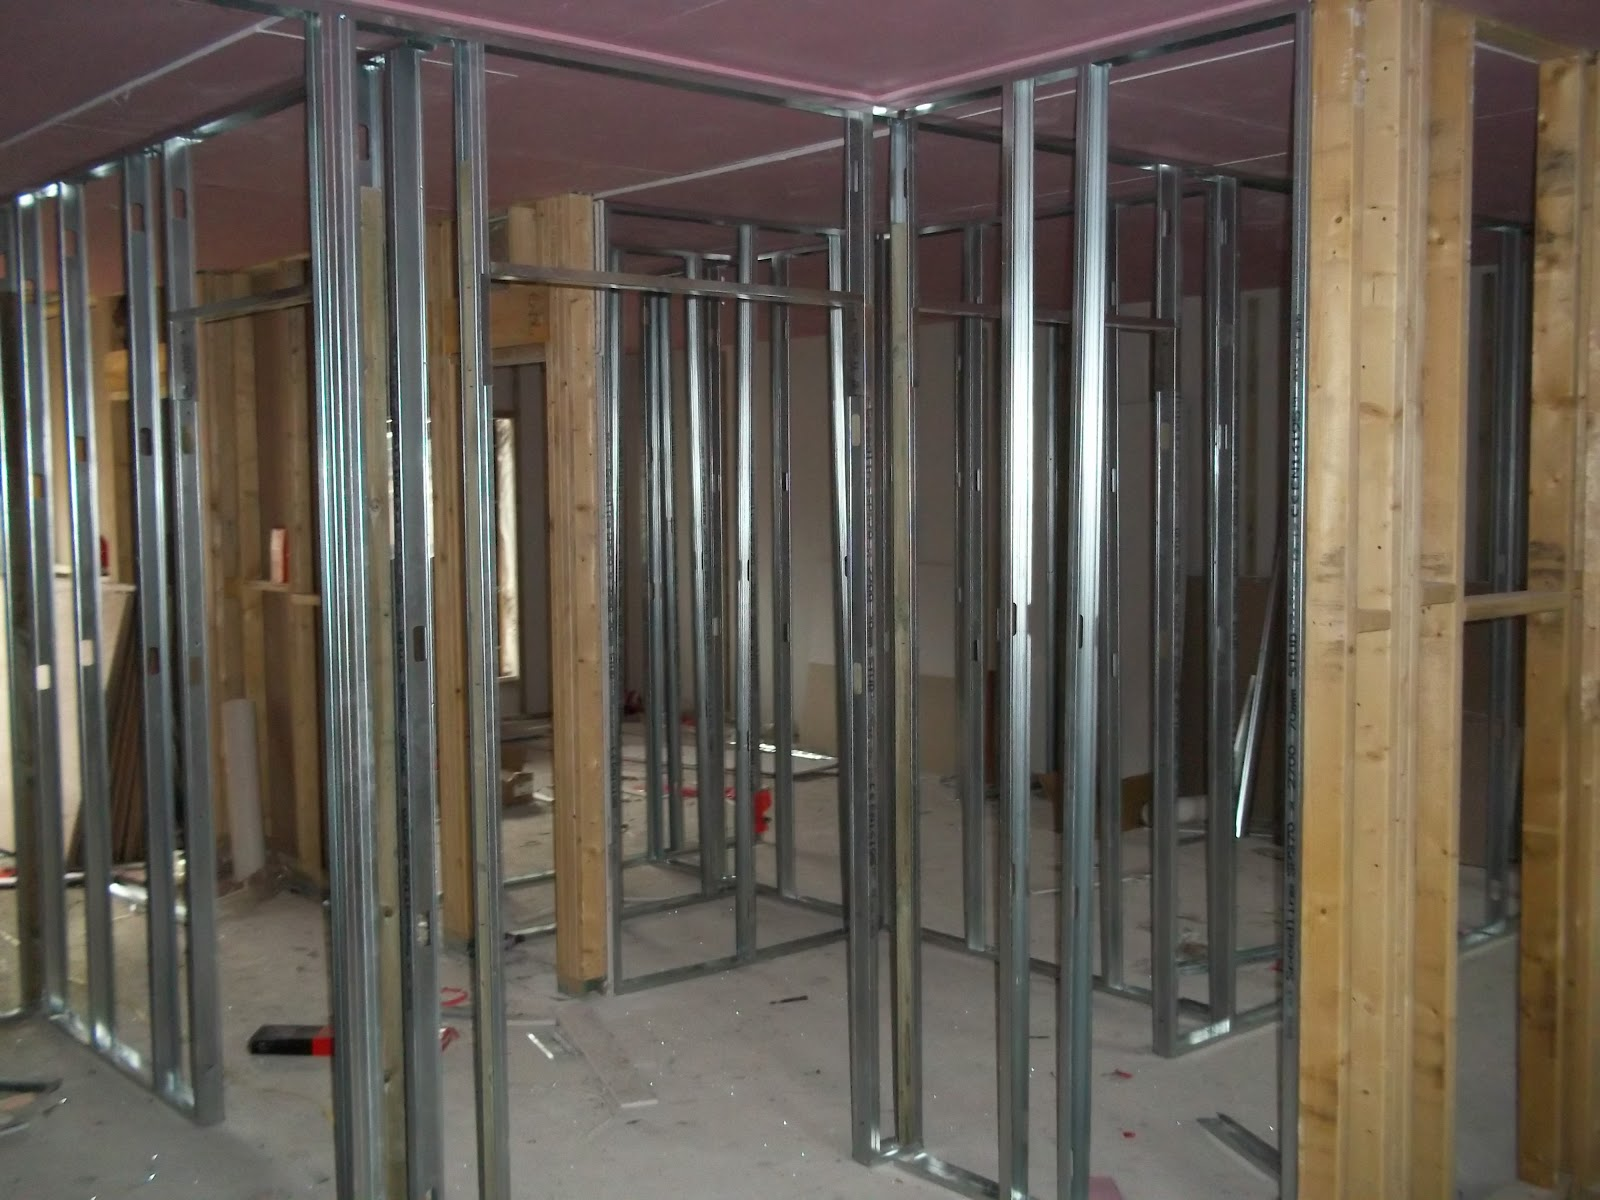 Metal Stud Partition Walls : Bray ceiling installtions ltd expert fitting of